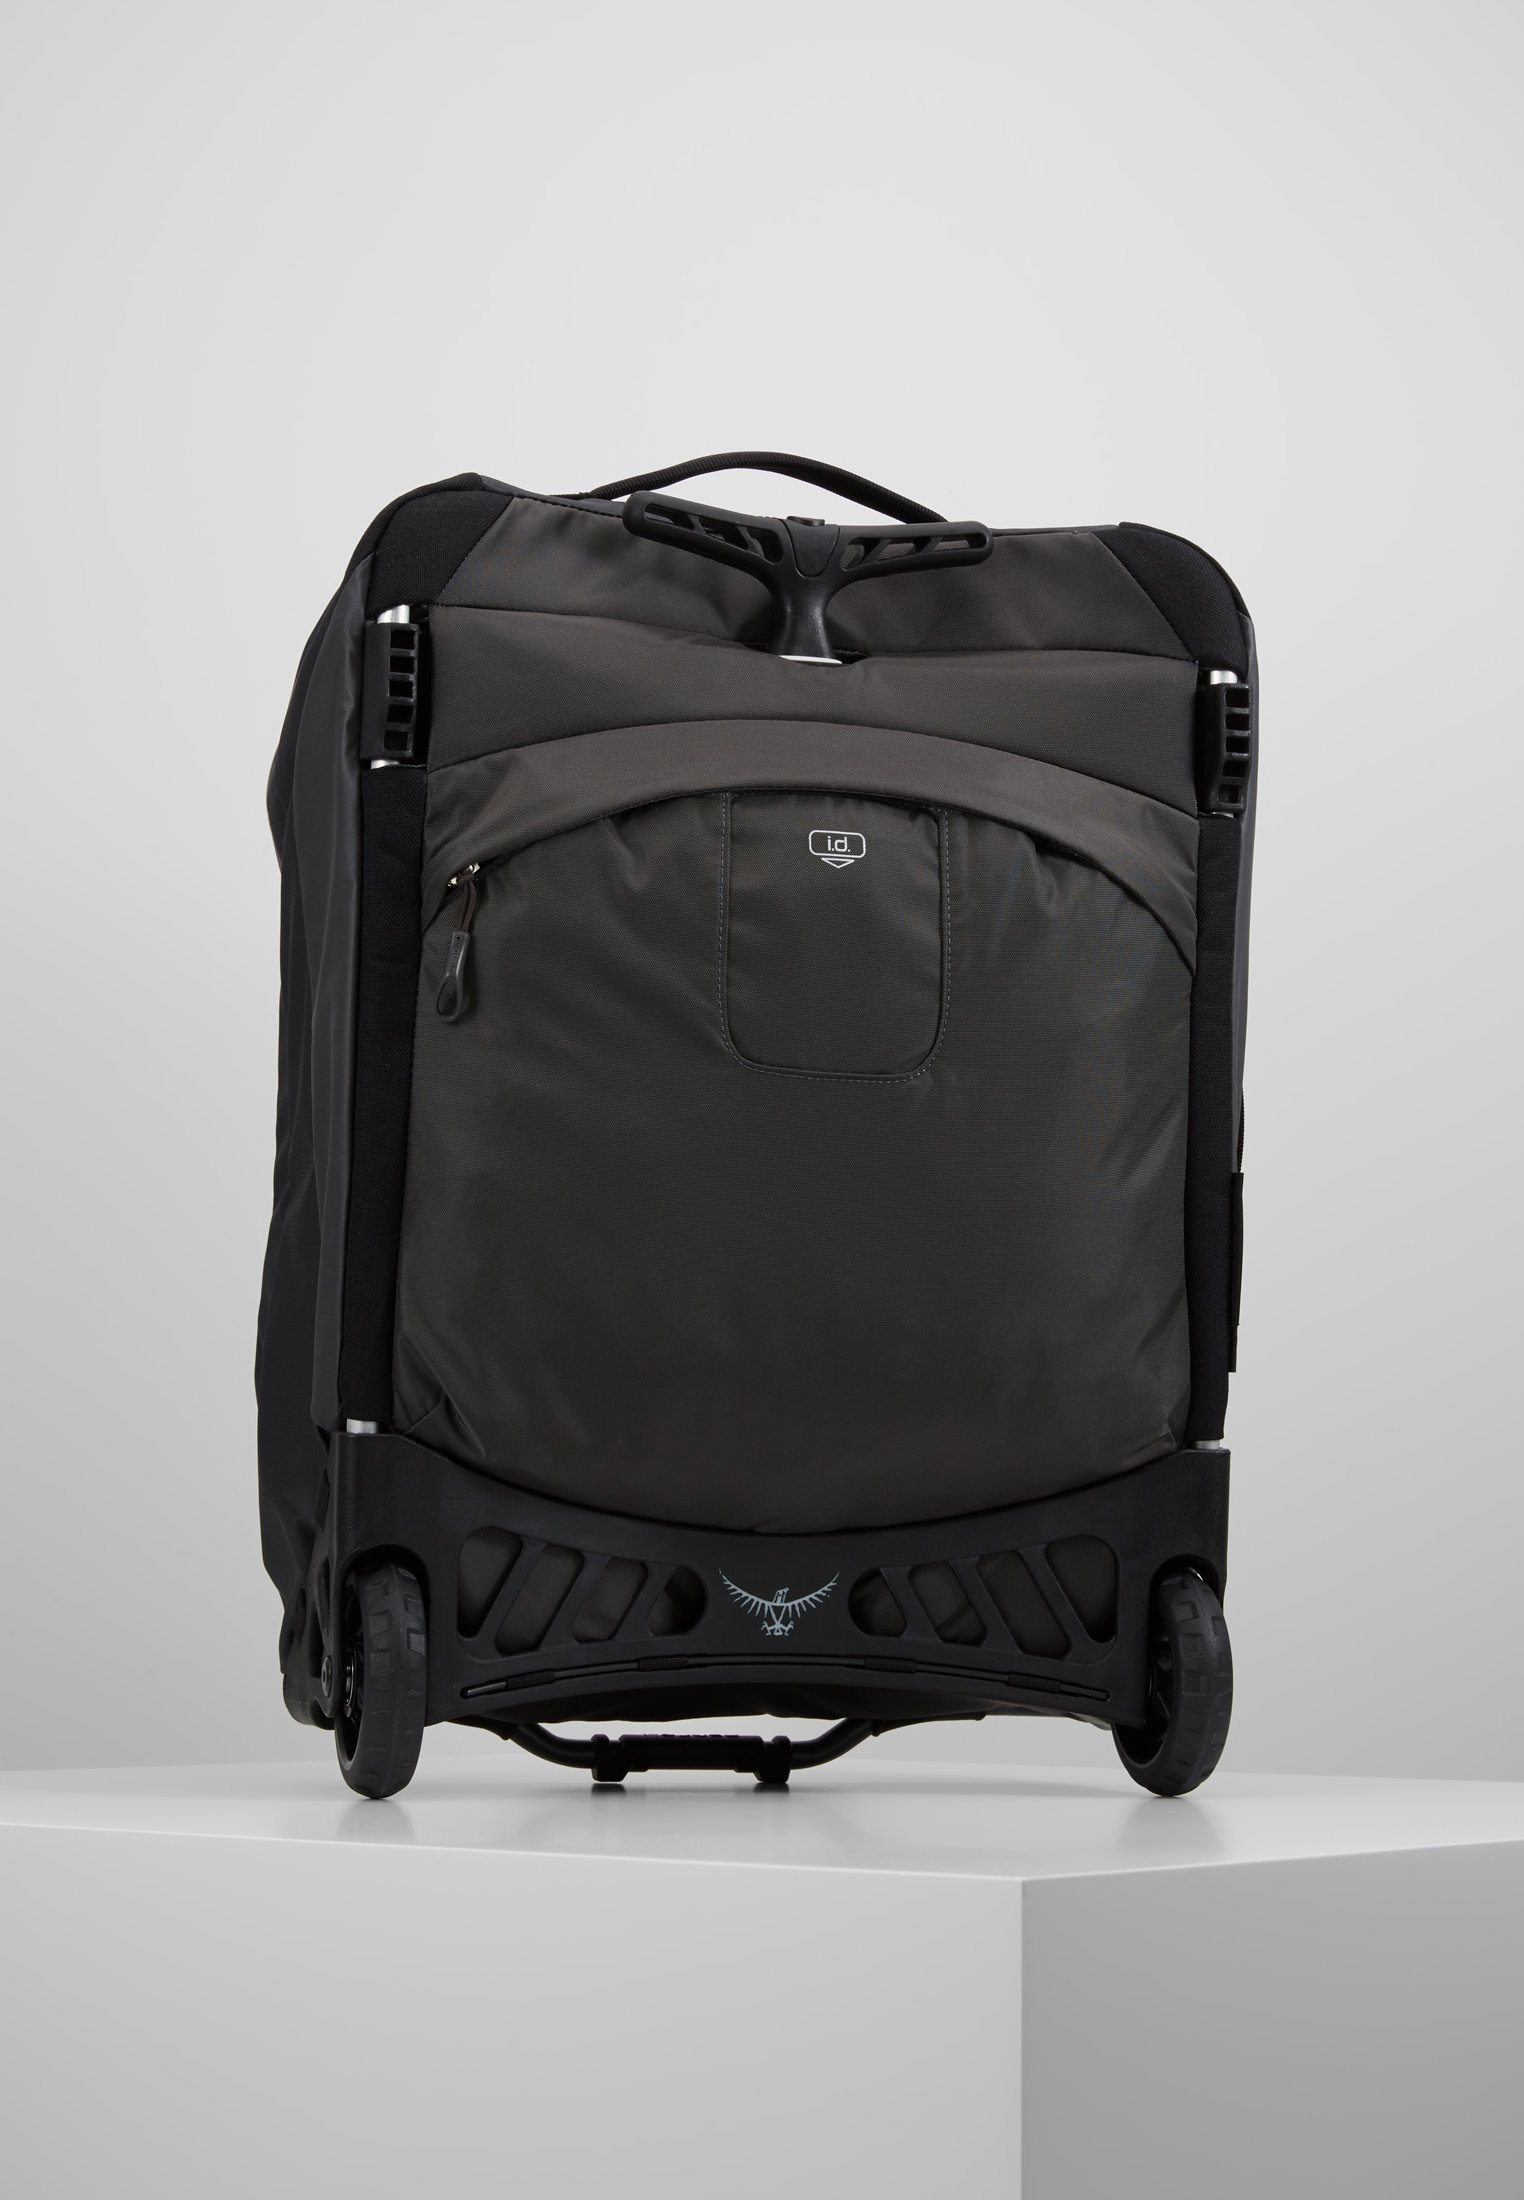 Qualità all'ingrosso Accessori Osprey ROLLING TRANSPORTER GLOBAL CARRY ON 33 Trolley black